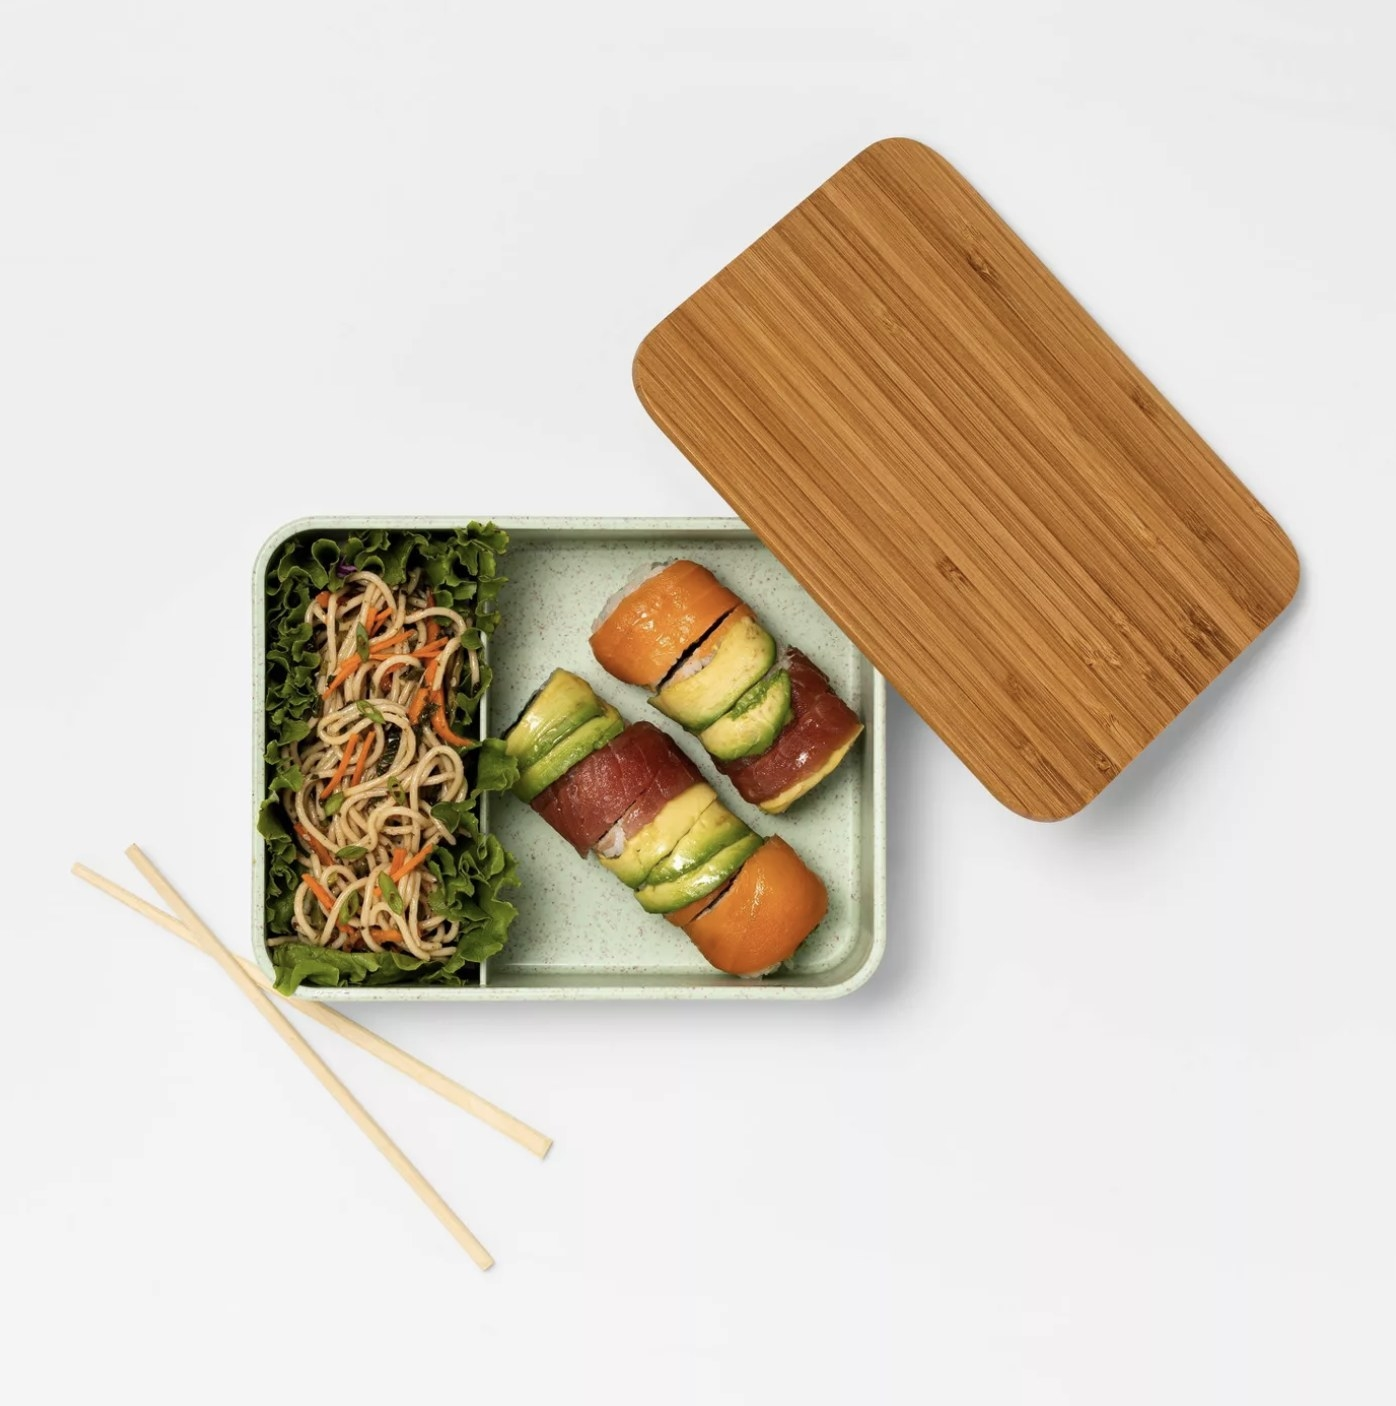 The bento box with sushi and noodles inside